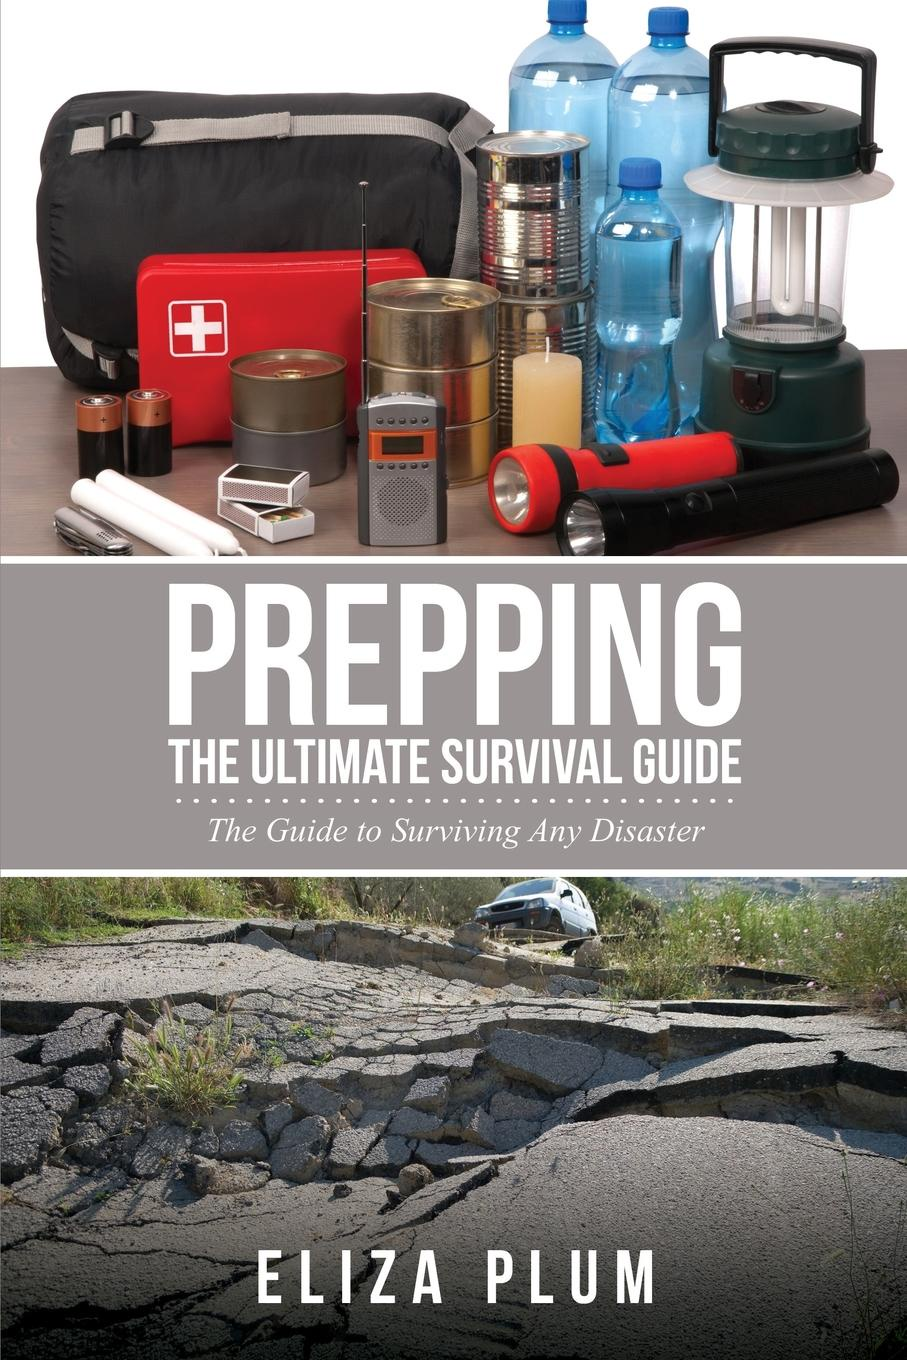 Eliza Plum Prepping. The Ultimate Survival Guide: The Guide to Surviving Any Disaster how to stay alive the ultimate survival guide for any situation